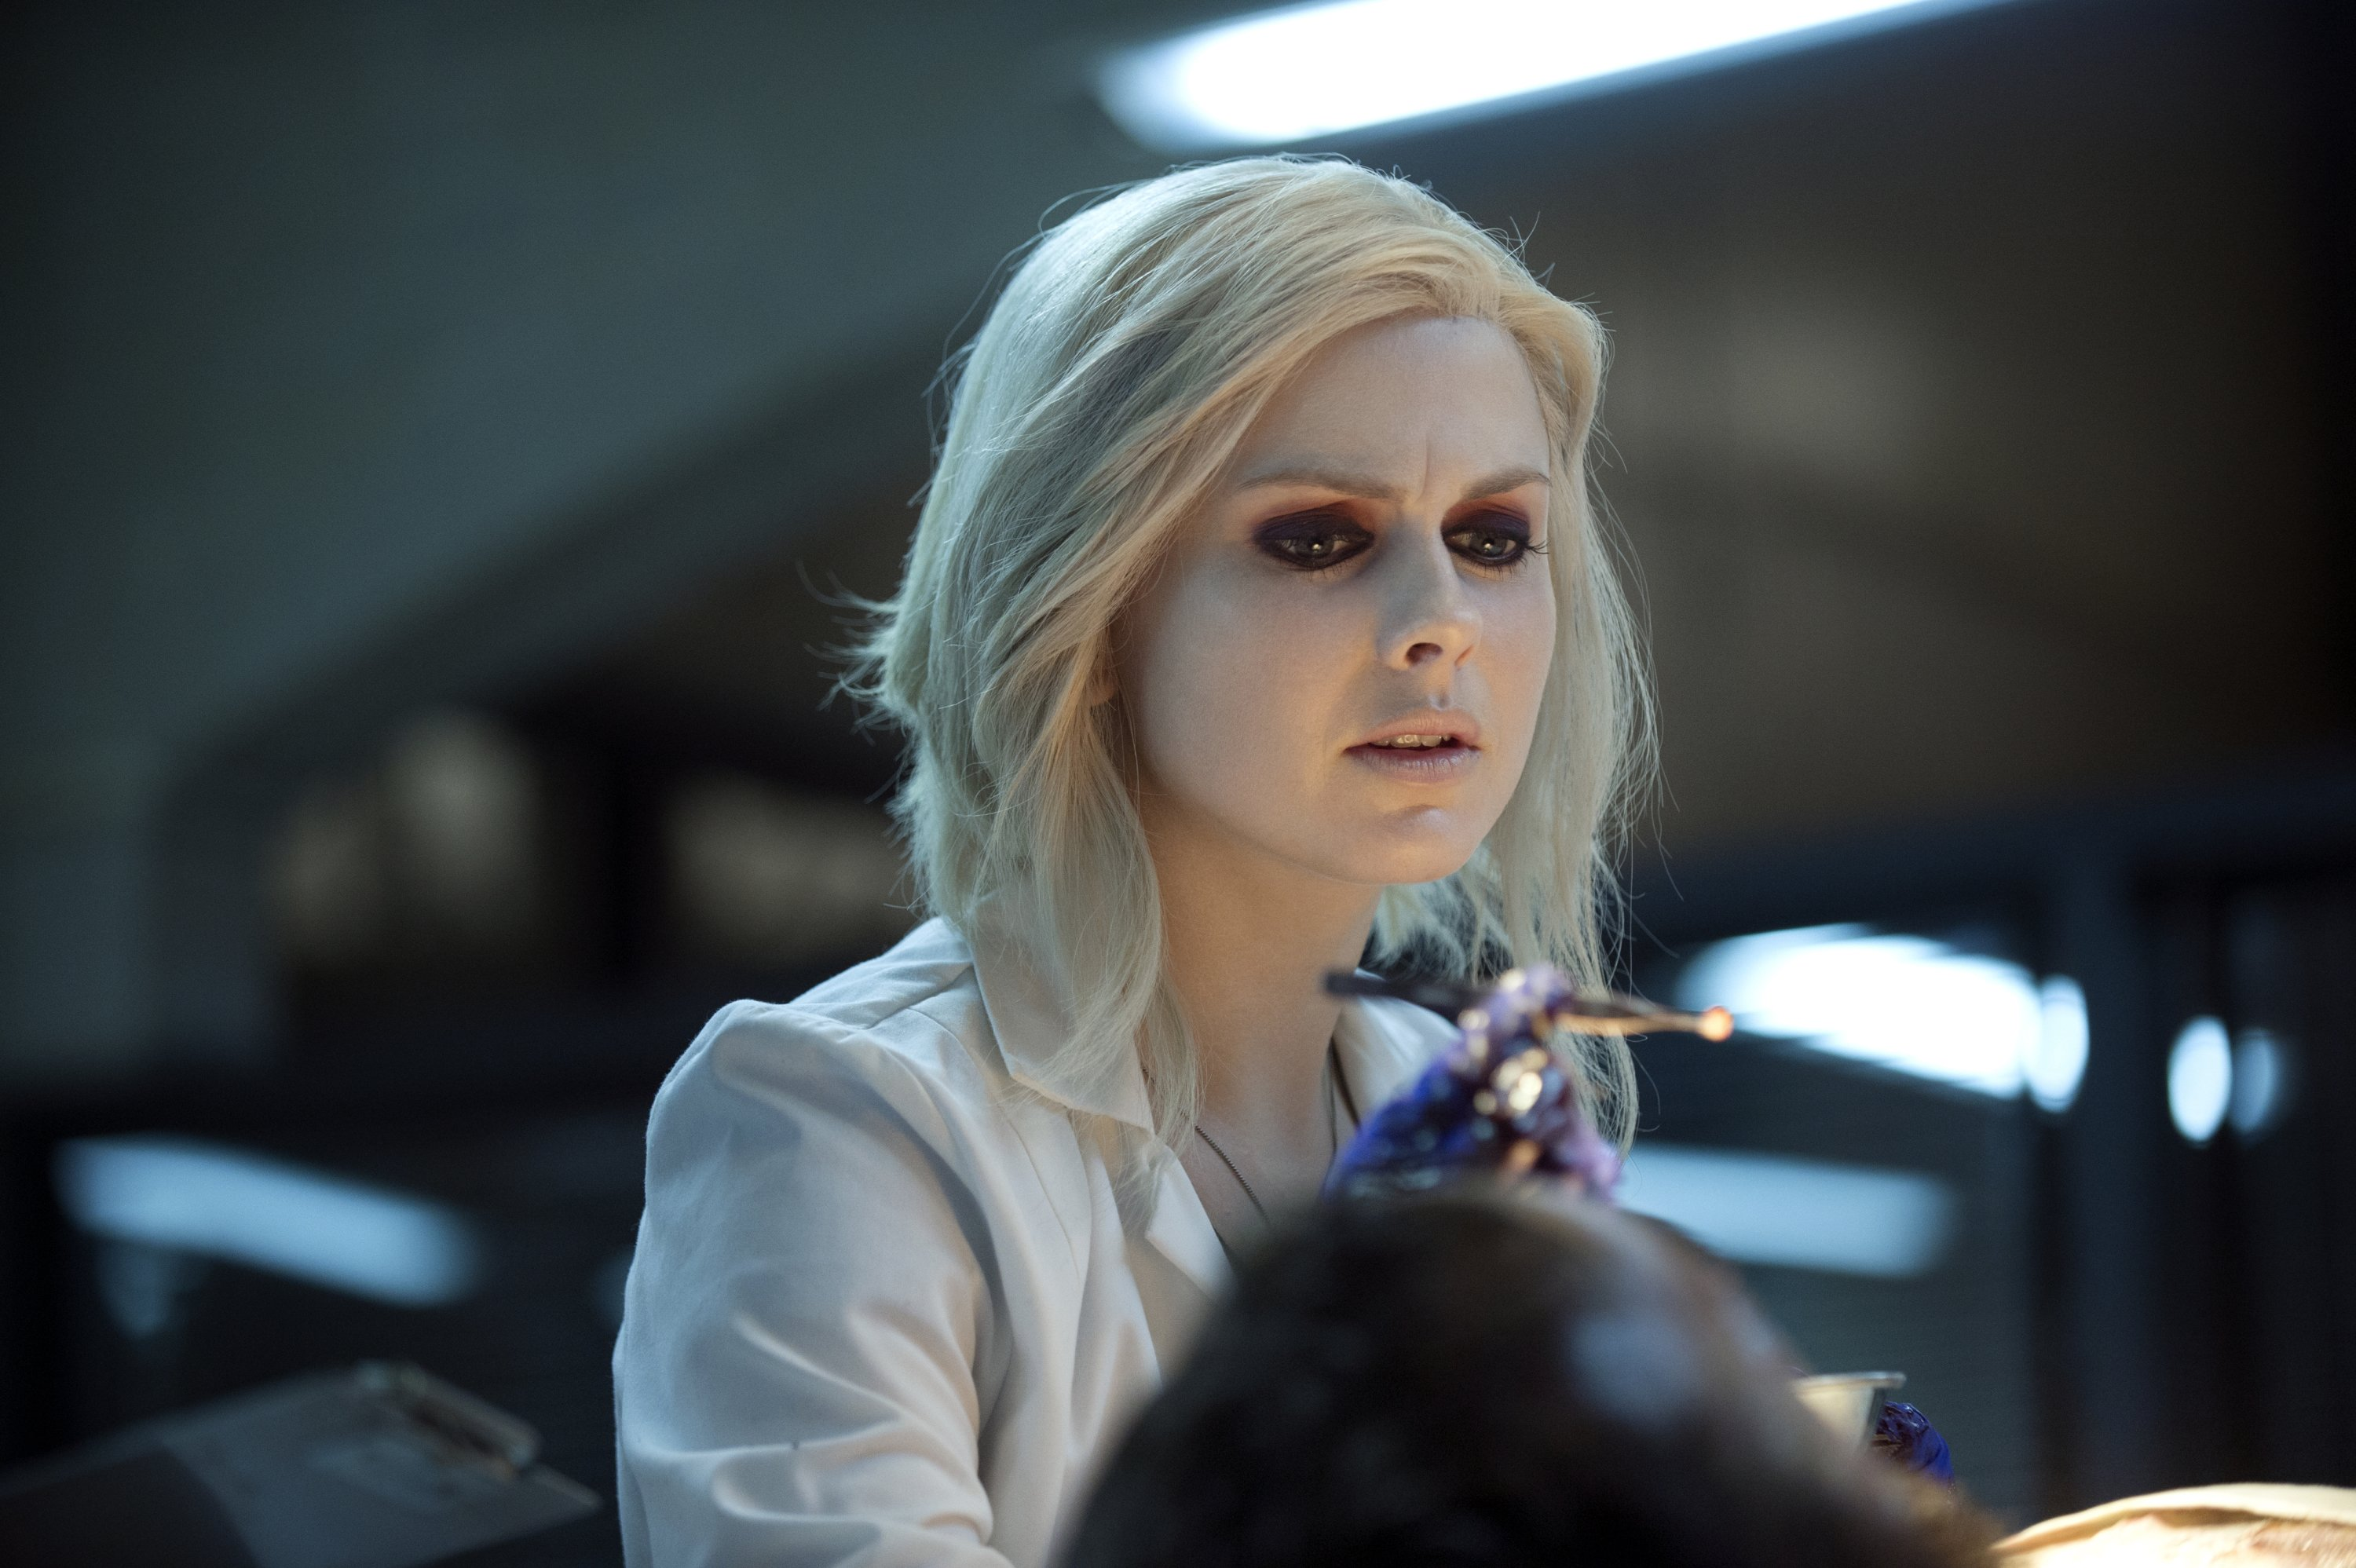 Rose McIver as Liv Moore in iZombie